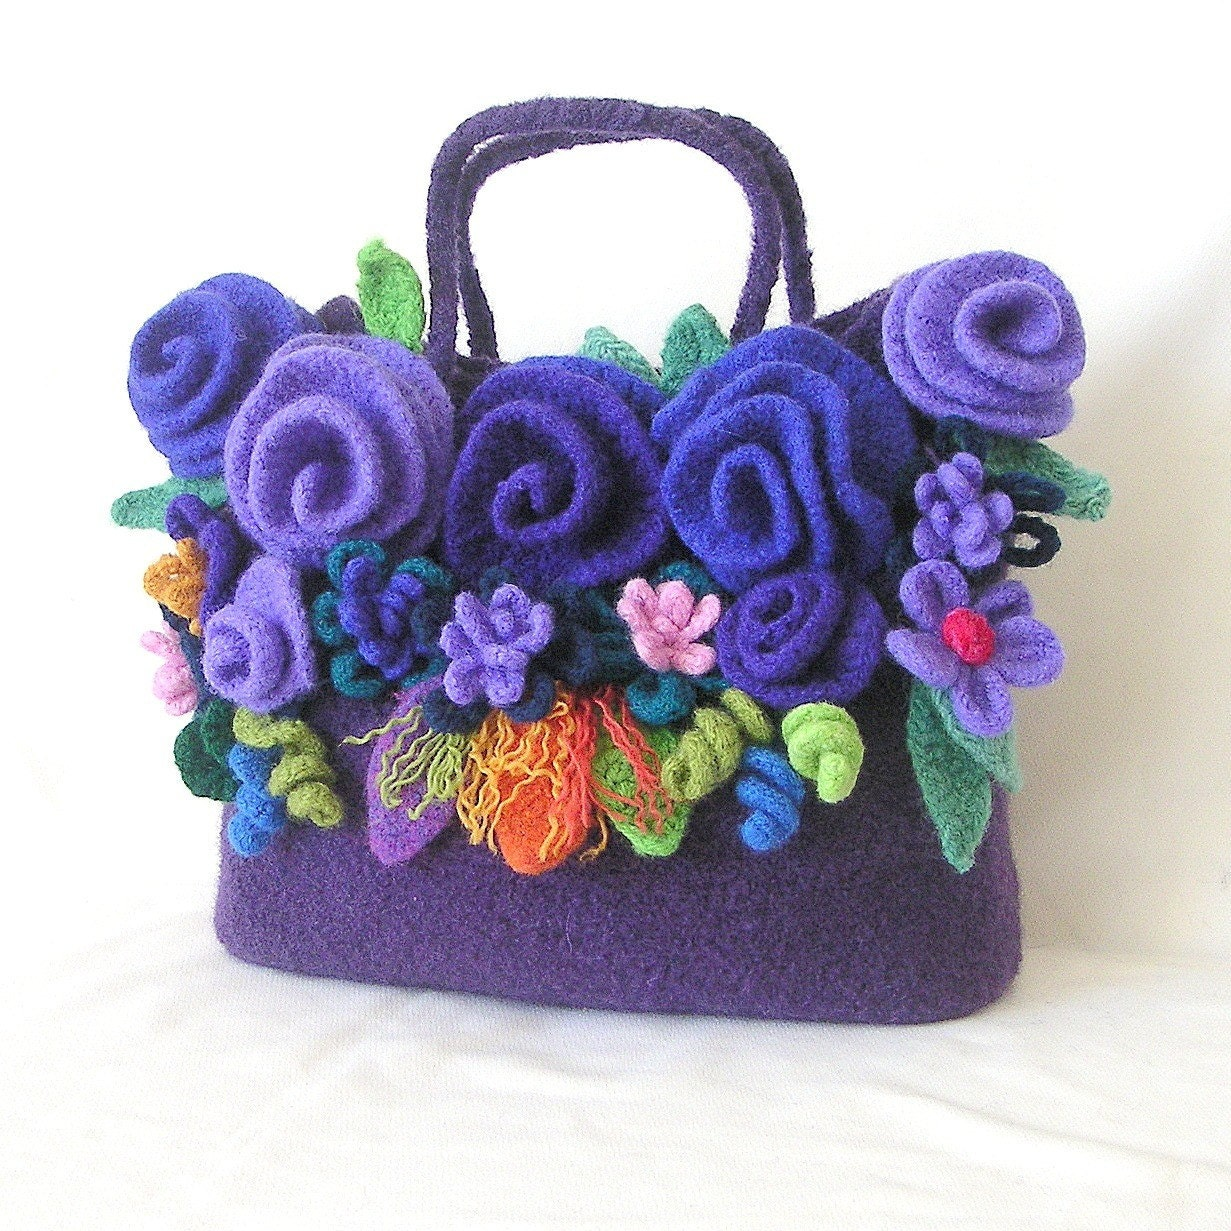 Crochet Felted Tote Bag Pattern : Unavailable Listing on Etsy